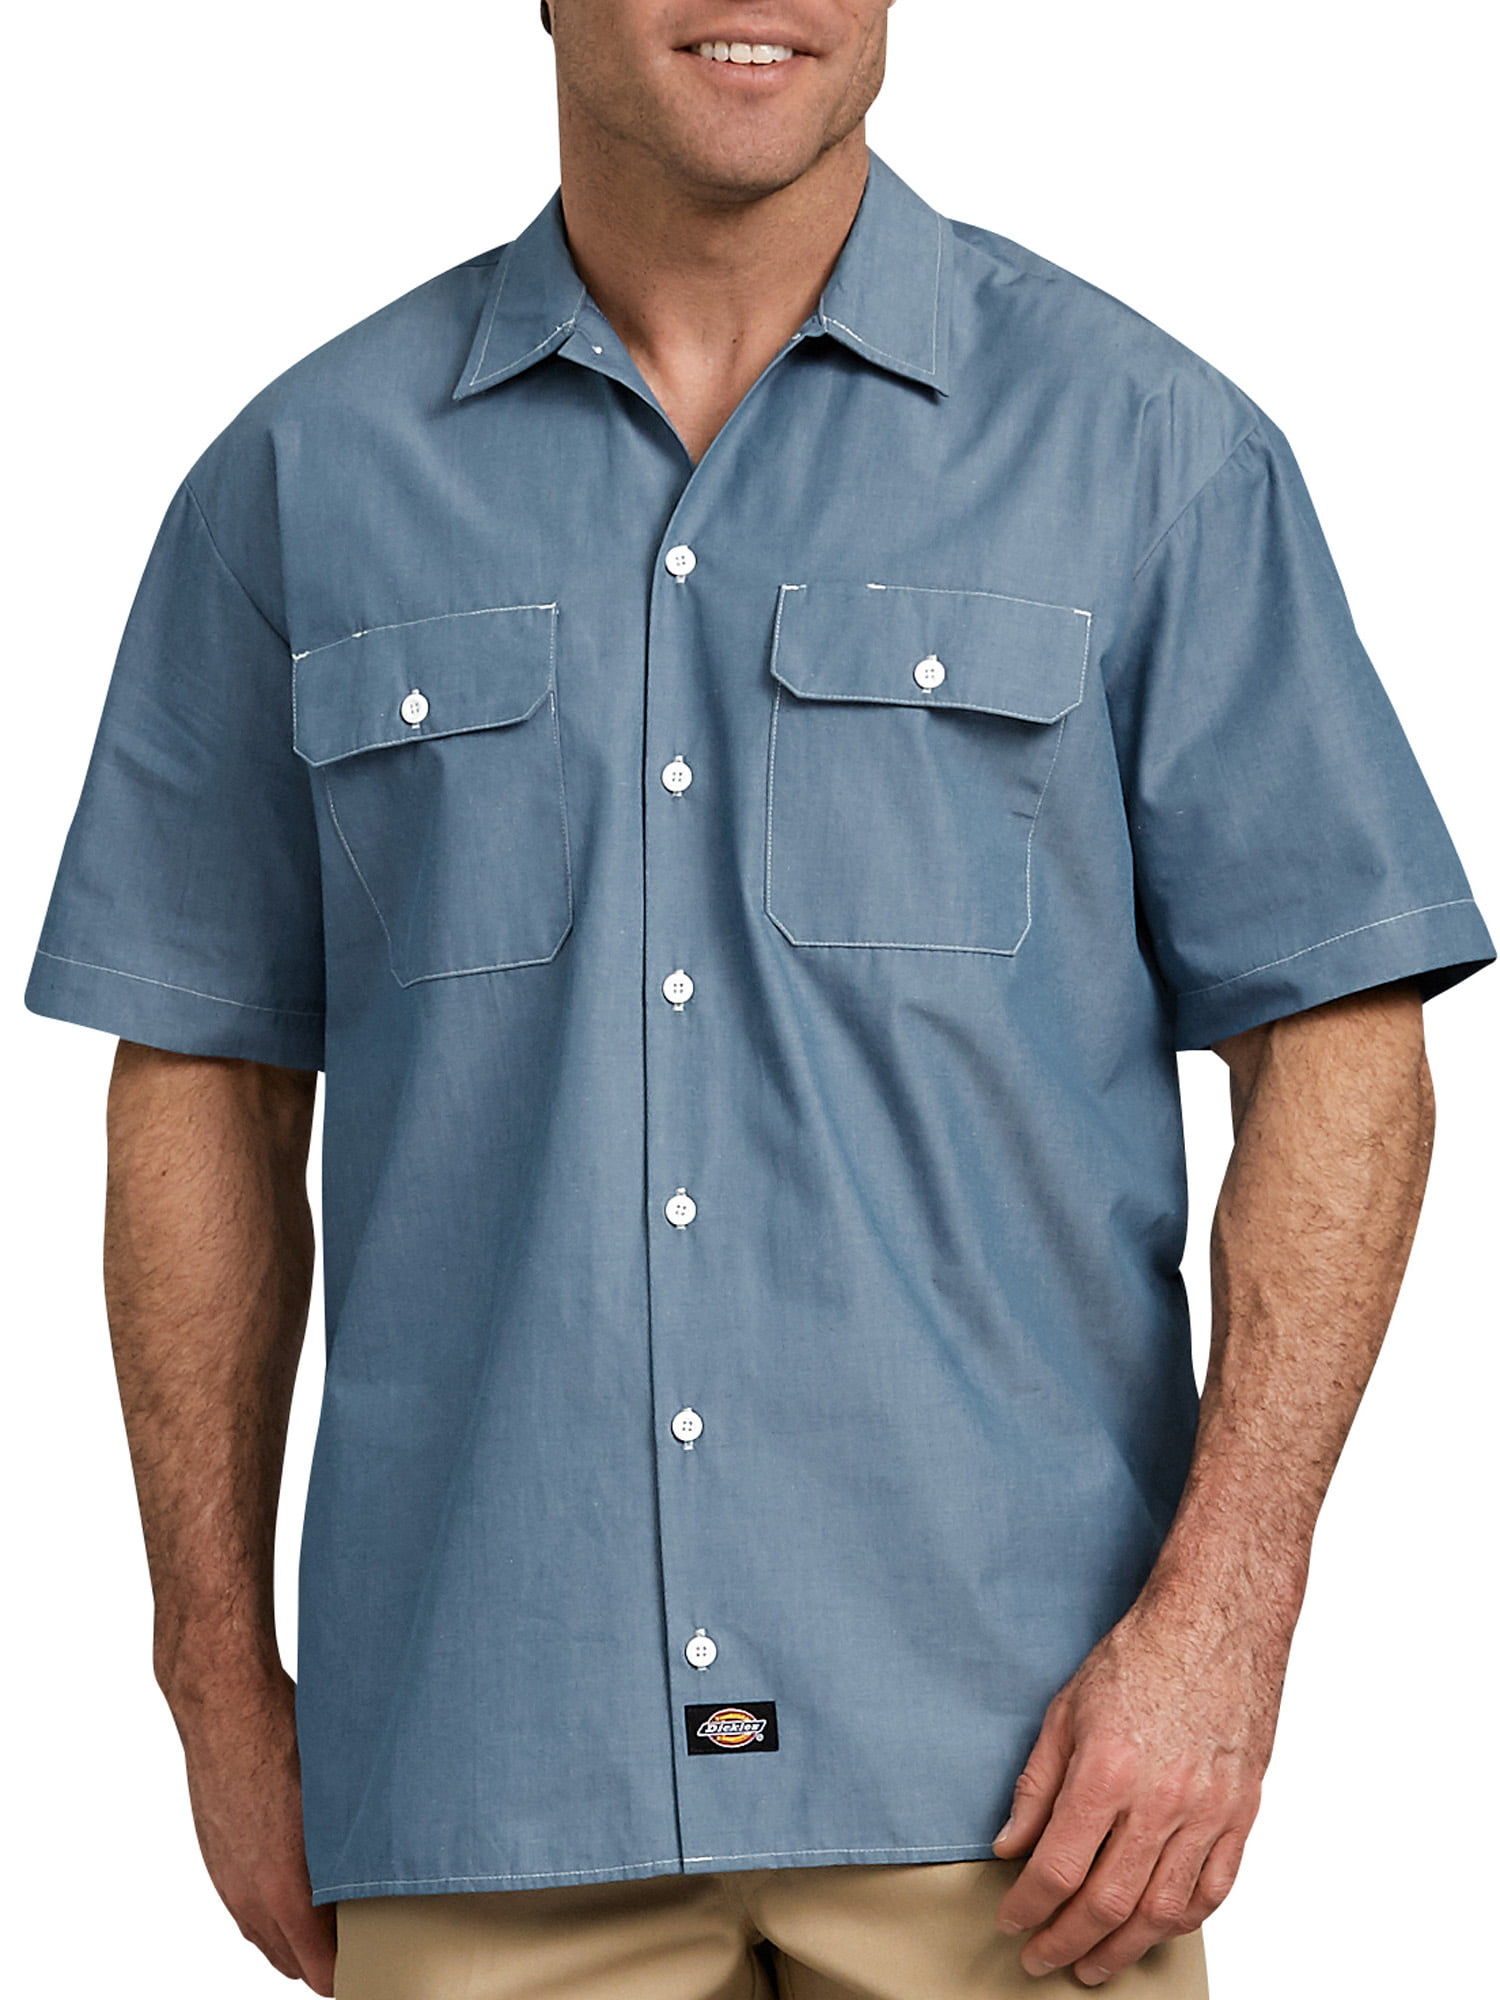 """LARGER SIZE SCHOOL-WORK SHIRT UP TO 18/"""" COLLAR 51/"""" CHEST SHORT SLEEVE BOYS-MENS"""